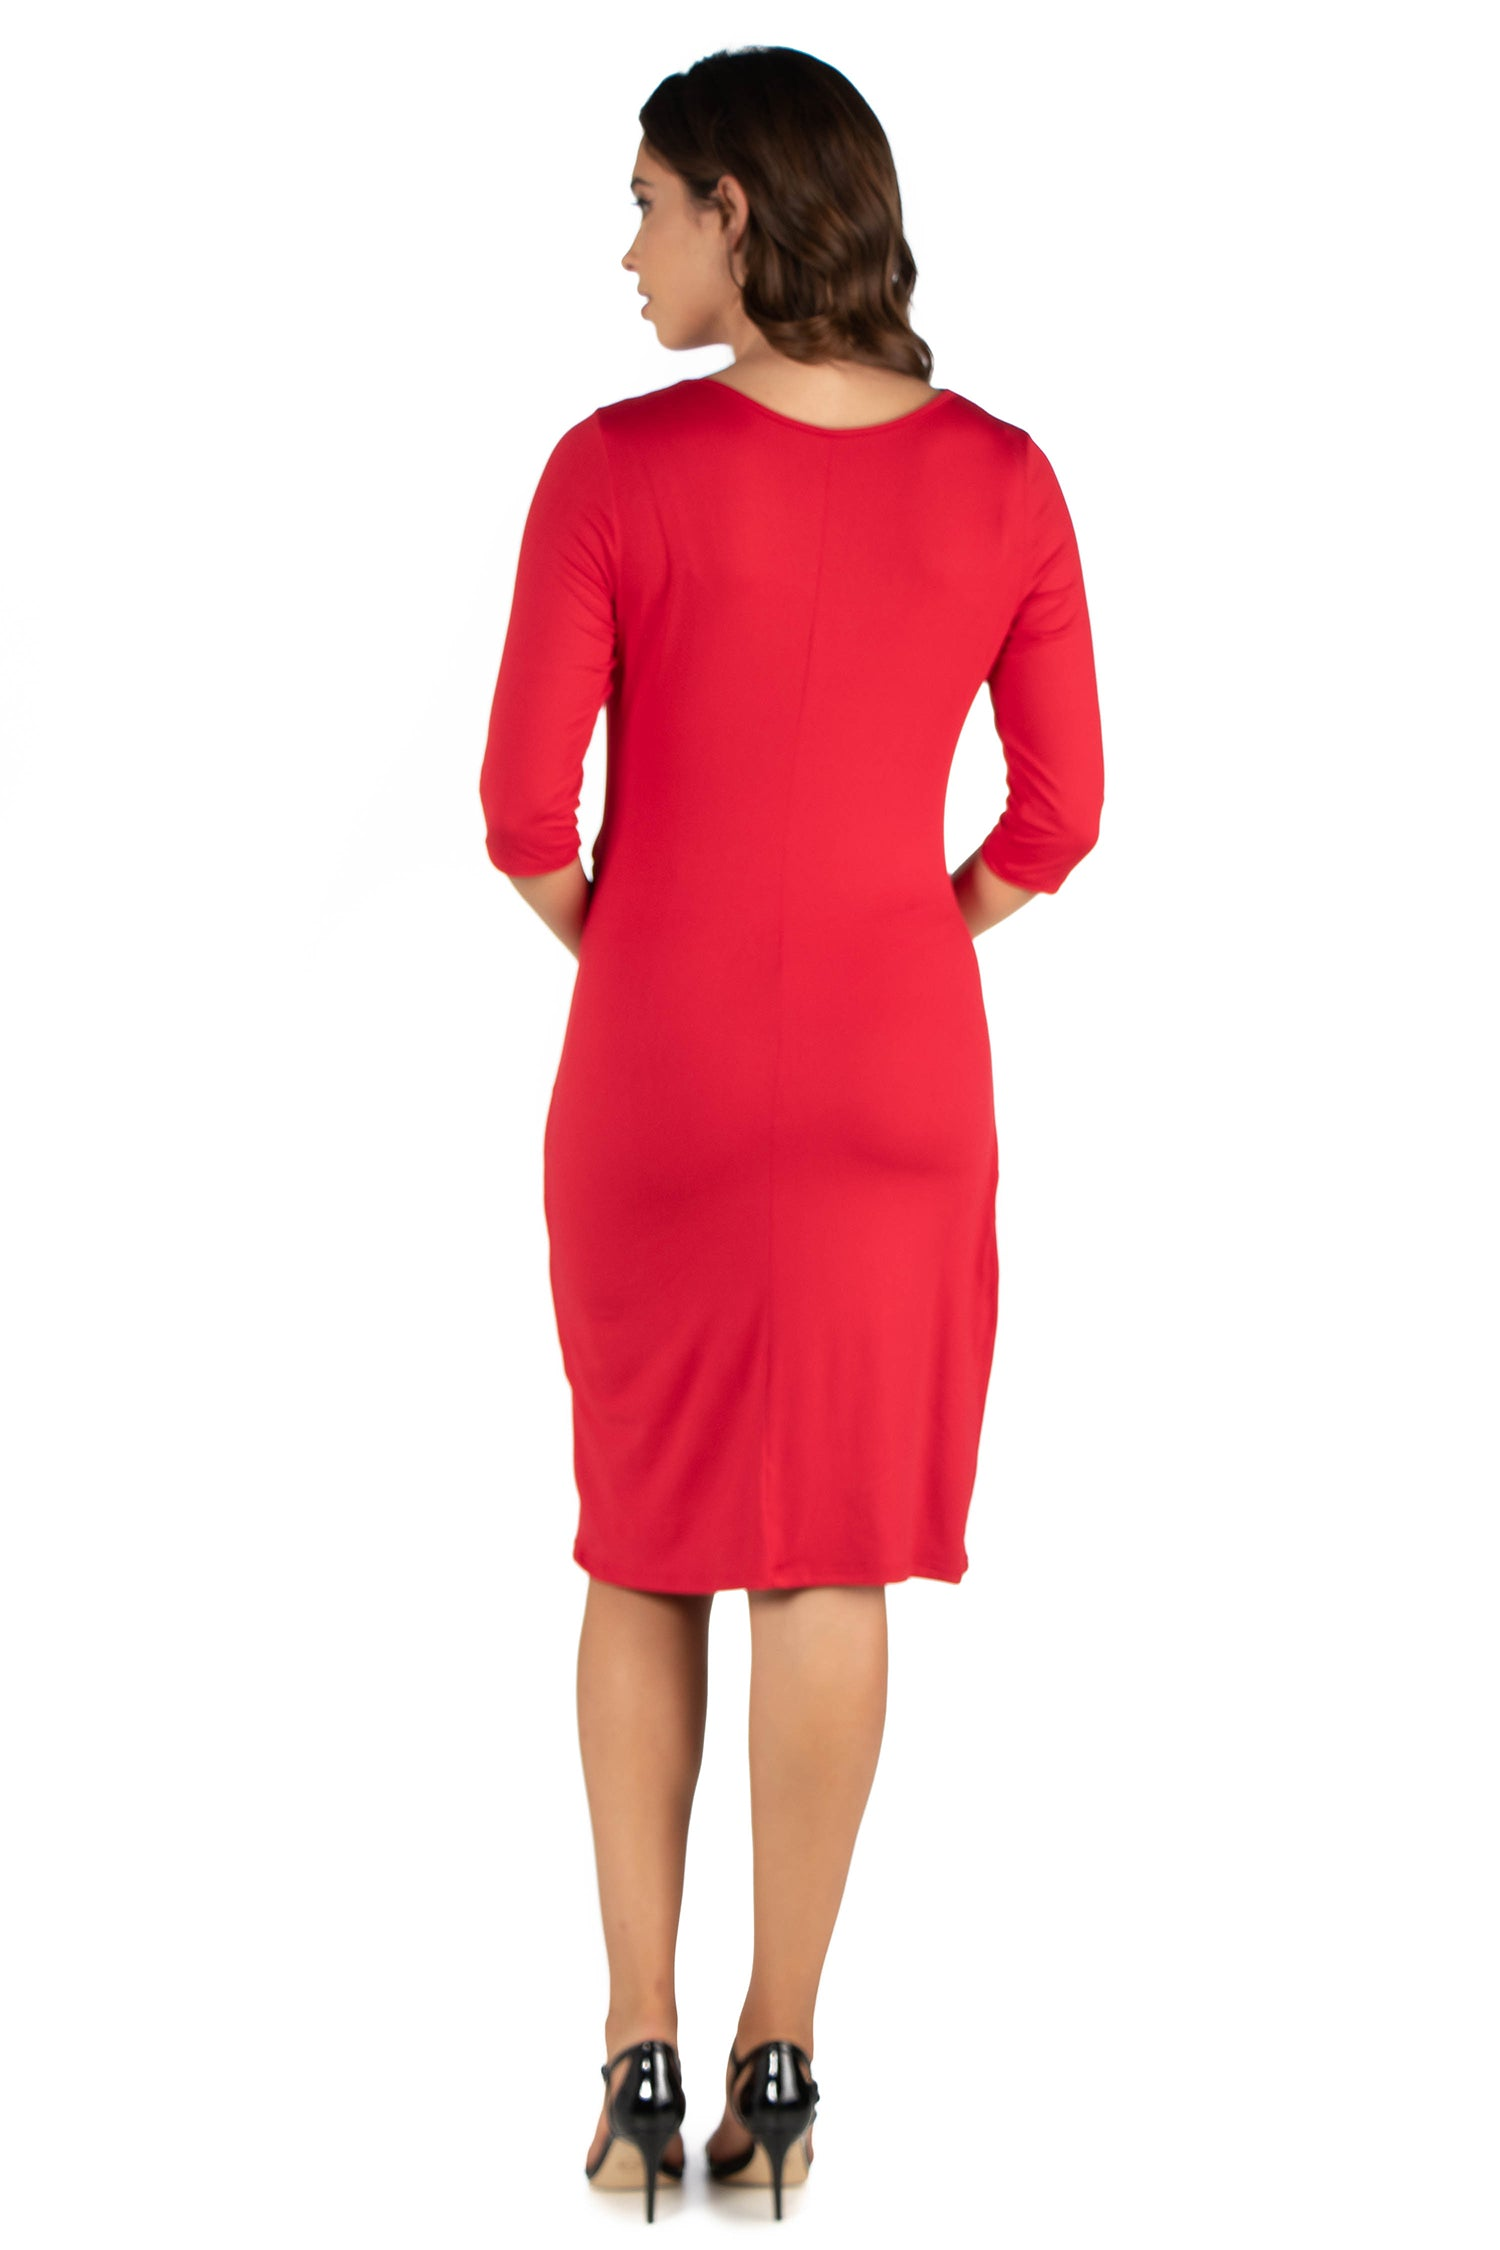 24seven Comfort Apparel Draped in Style Knee Length V Neck Maternity Dress-DRESSES-24Seven Comfort Apparel-RED-S-24/7 Comfort Apparel